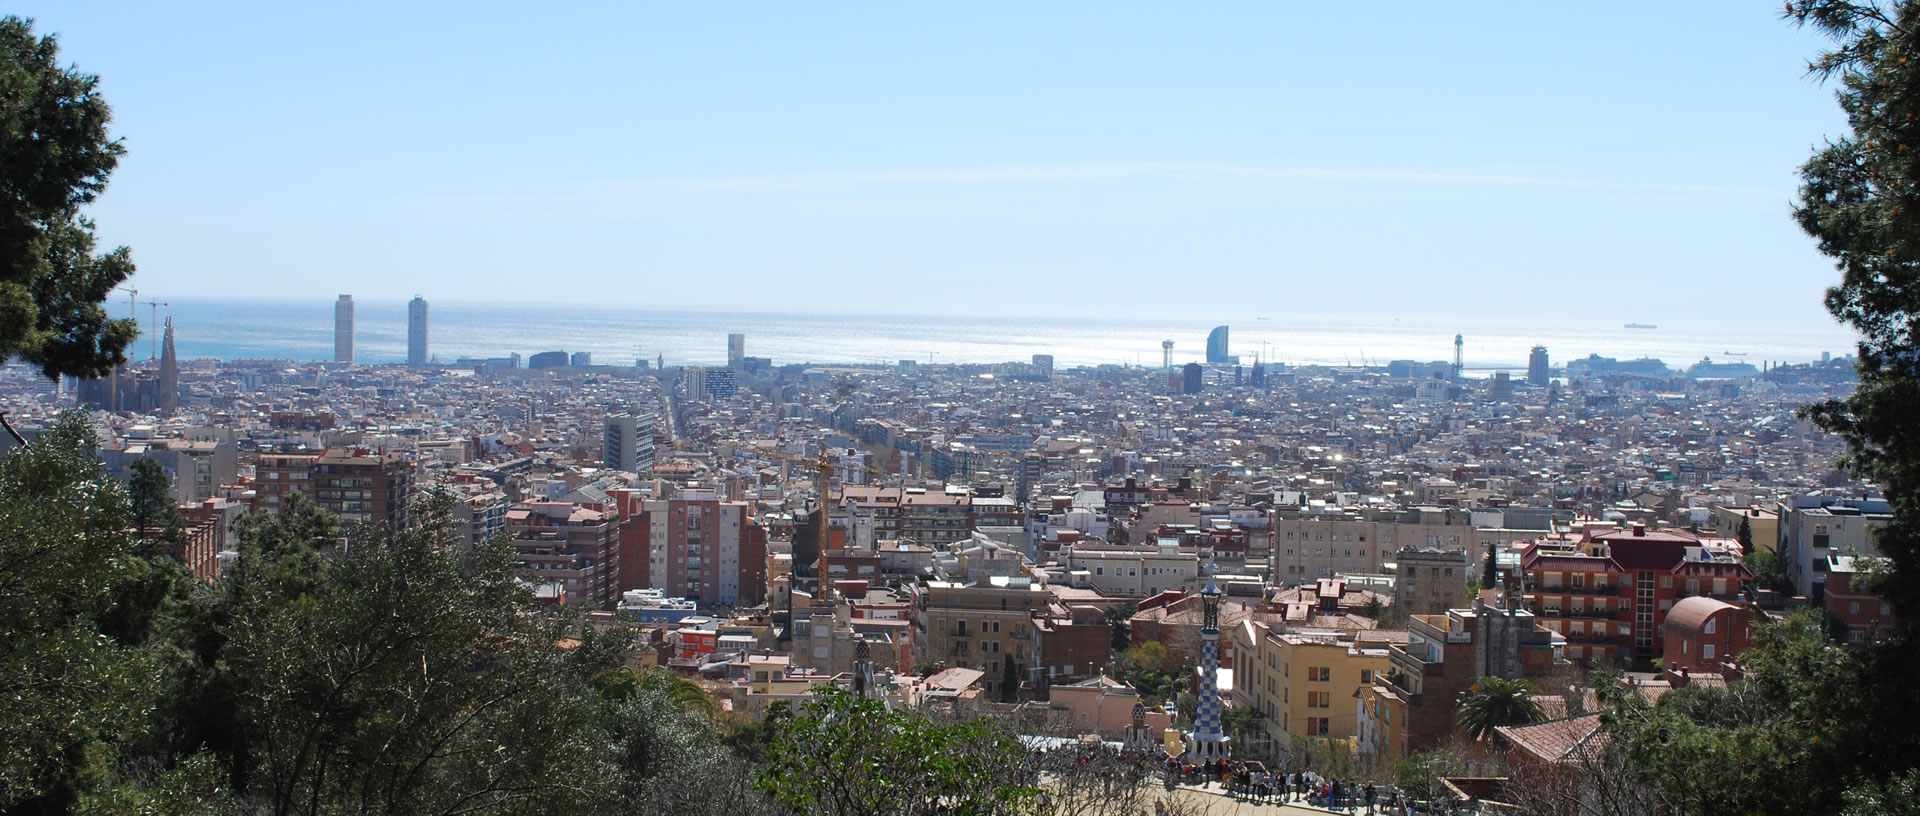 Barcelona_city_view